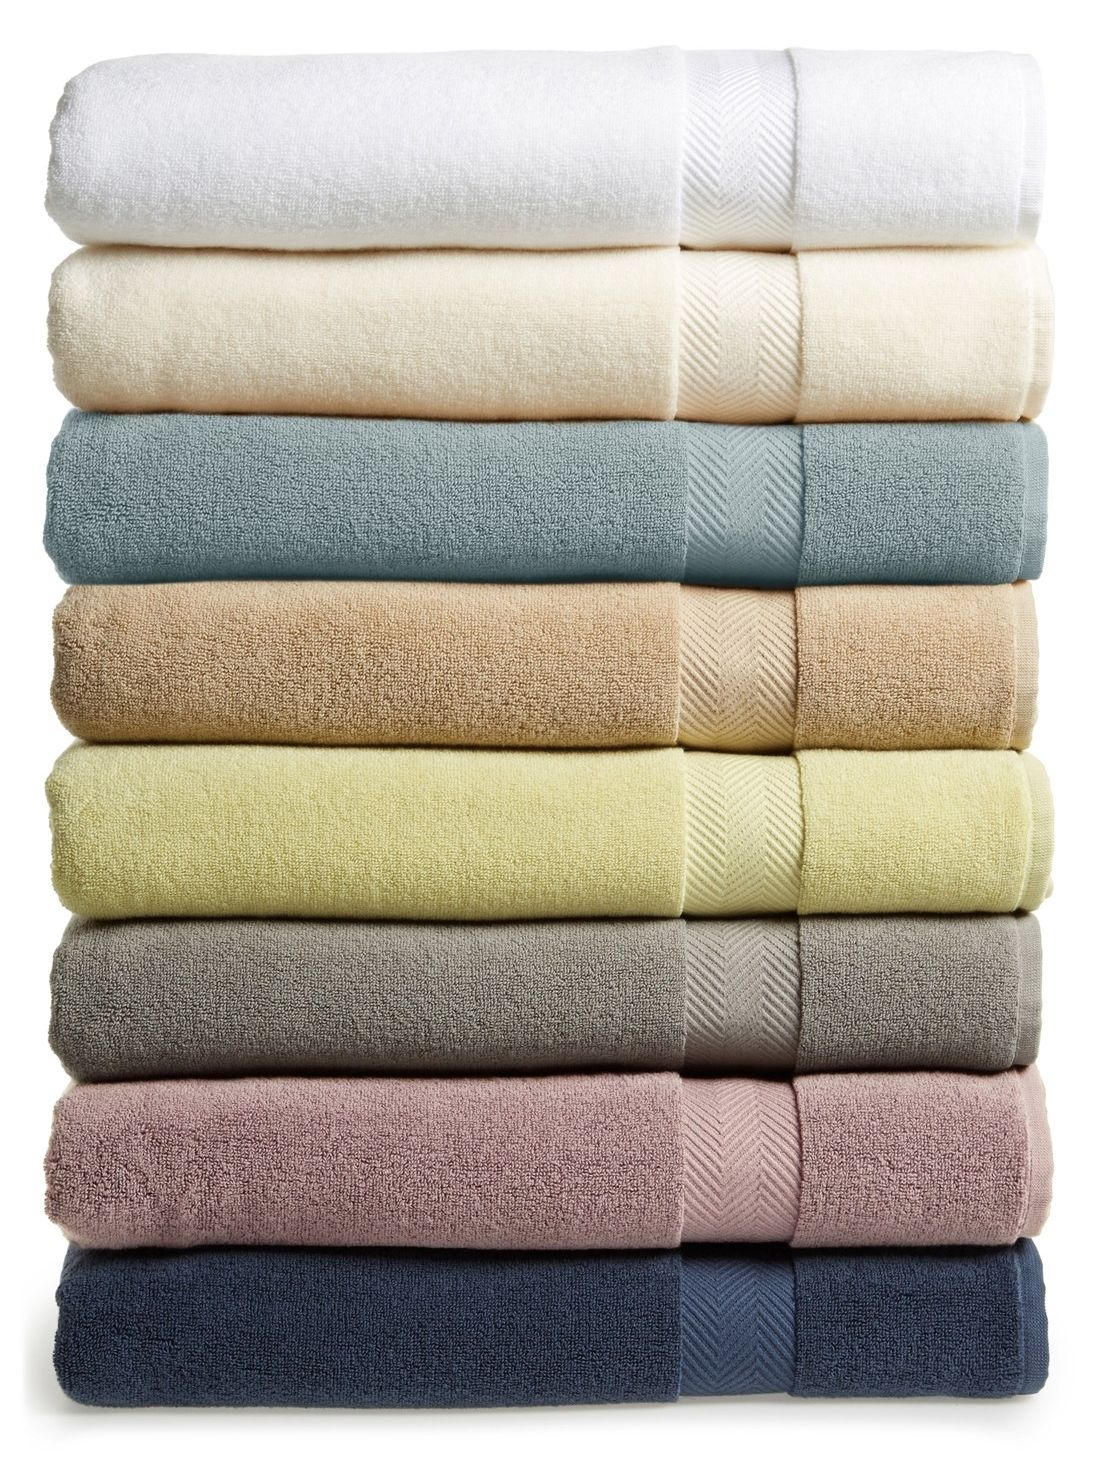 Hydrocotton Bath Towels Fair Hydrocotton Bath Towel  Cotton Towels Towels And Tiny Bathrooms Review